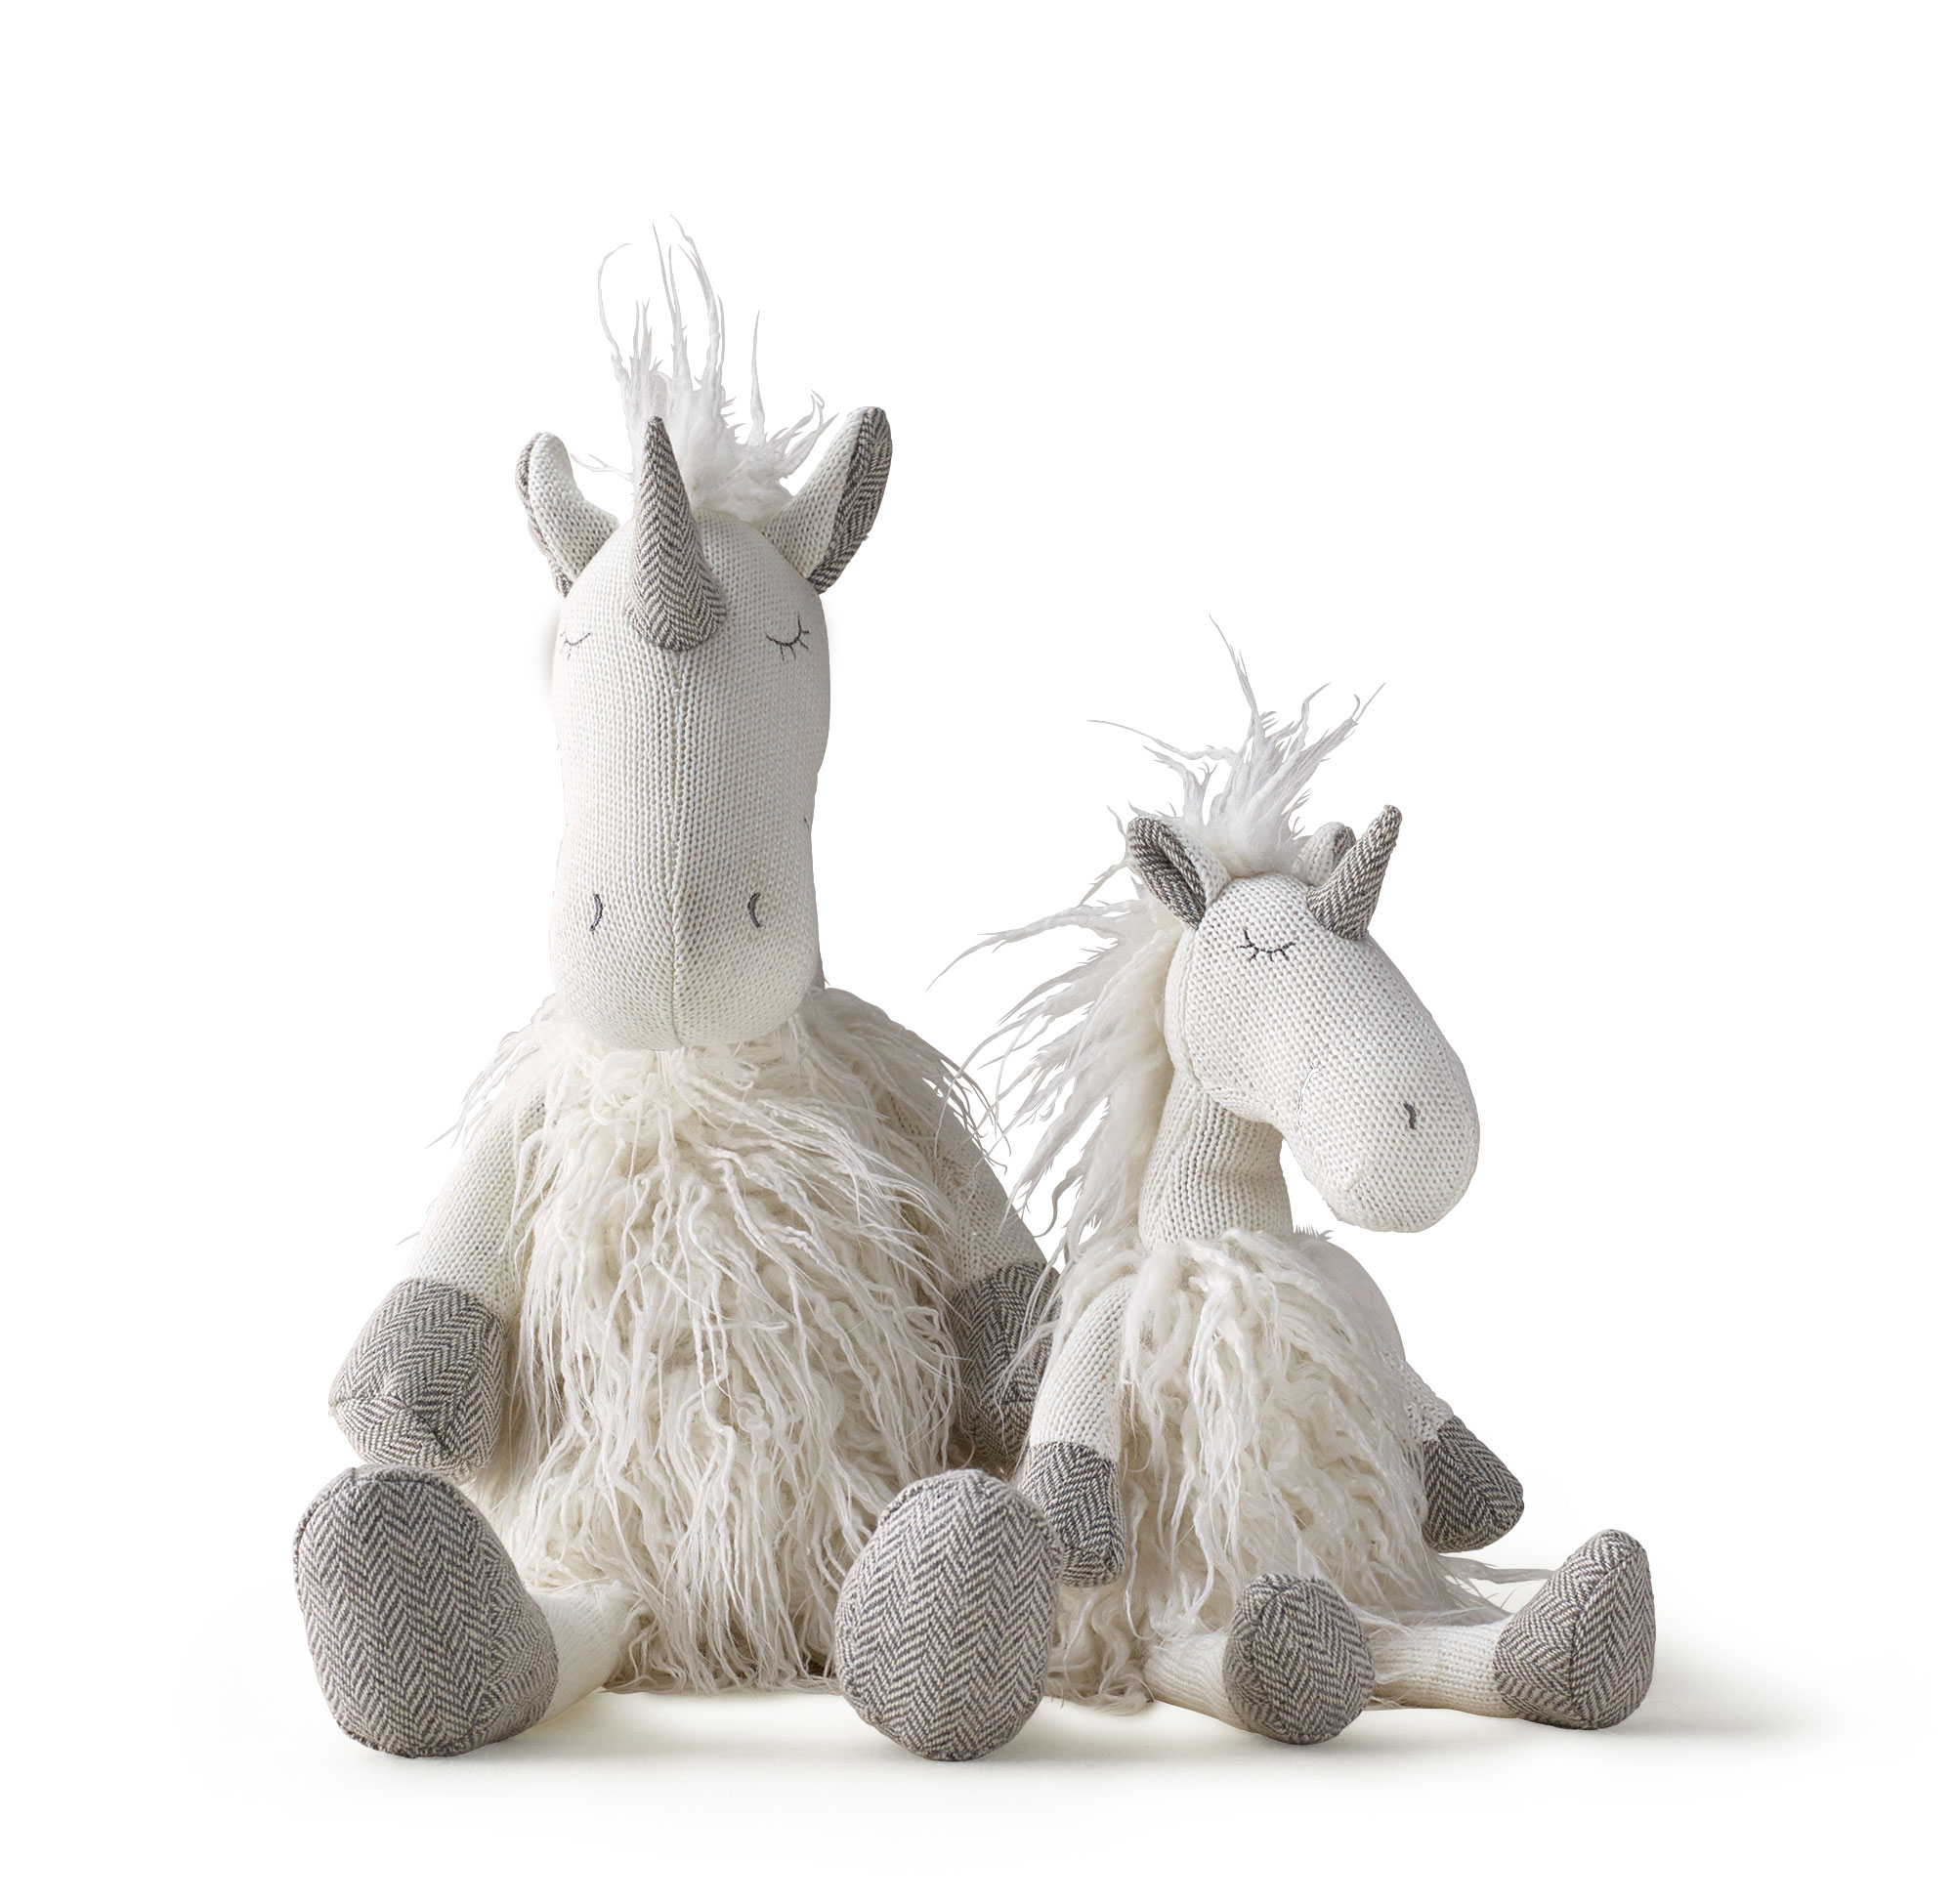 Charming Toys Decor And Accessories For Tiny Tots All